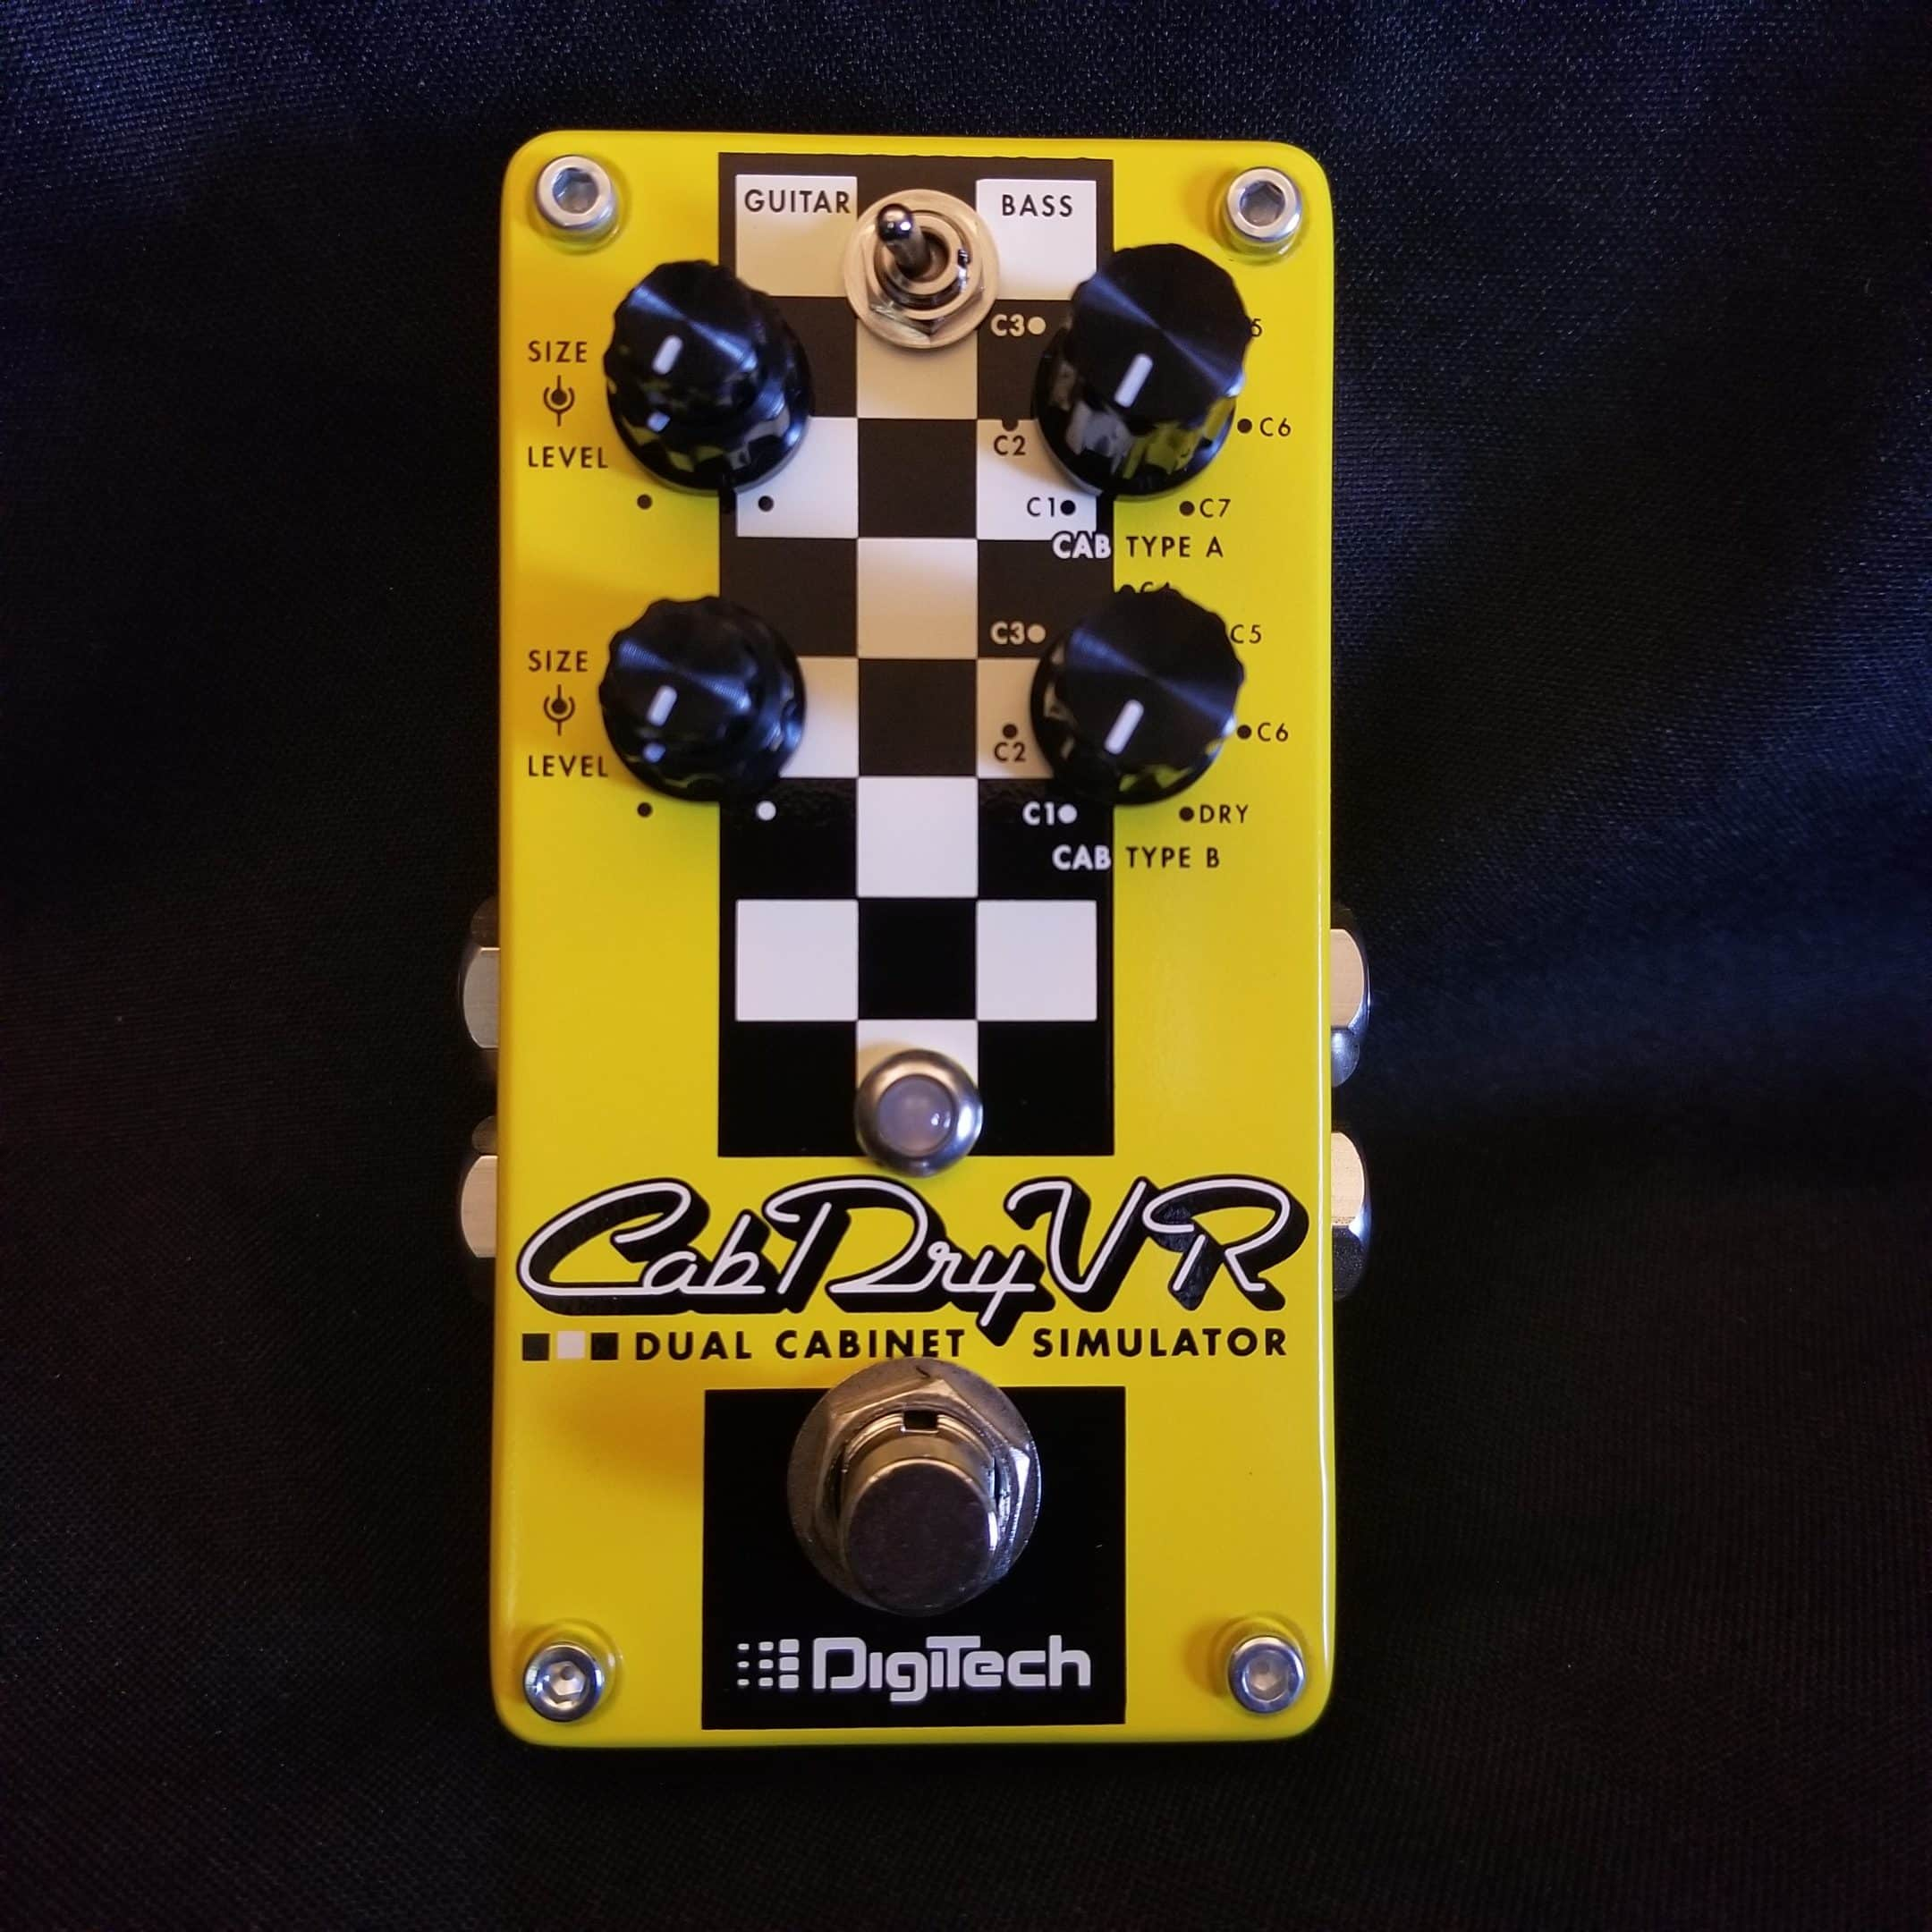 new digitech cabdryvr dual cabinet simulator guitar effects fx pedal stompbox eclectic sounds. Black Bedroom Furniture Sets. Home Design Ideas